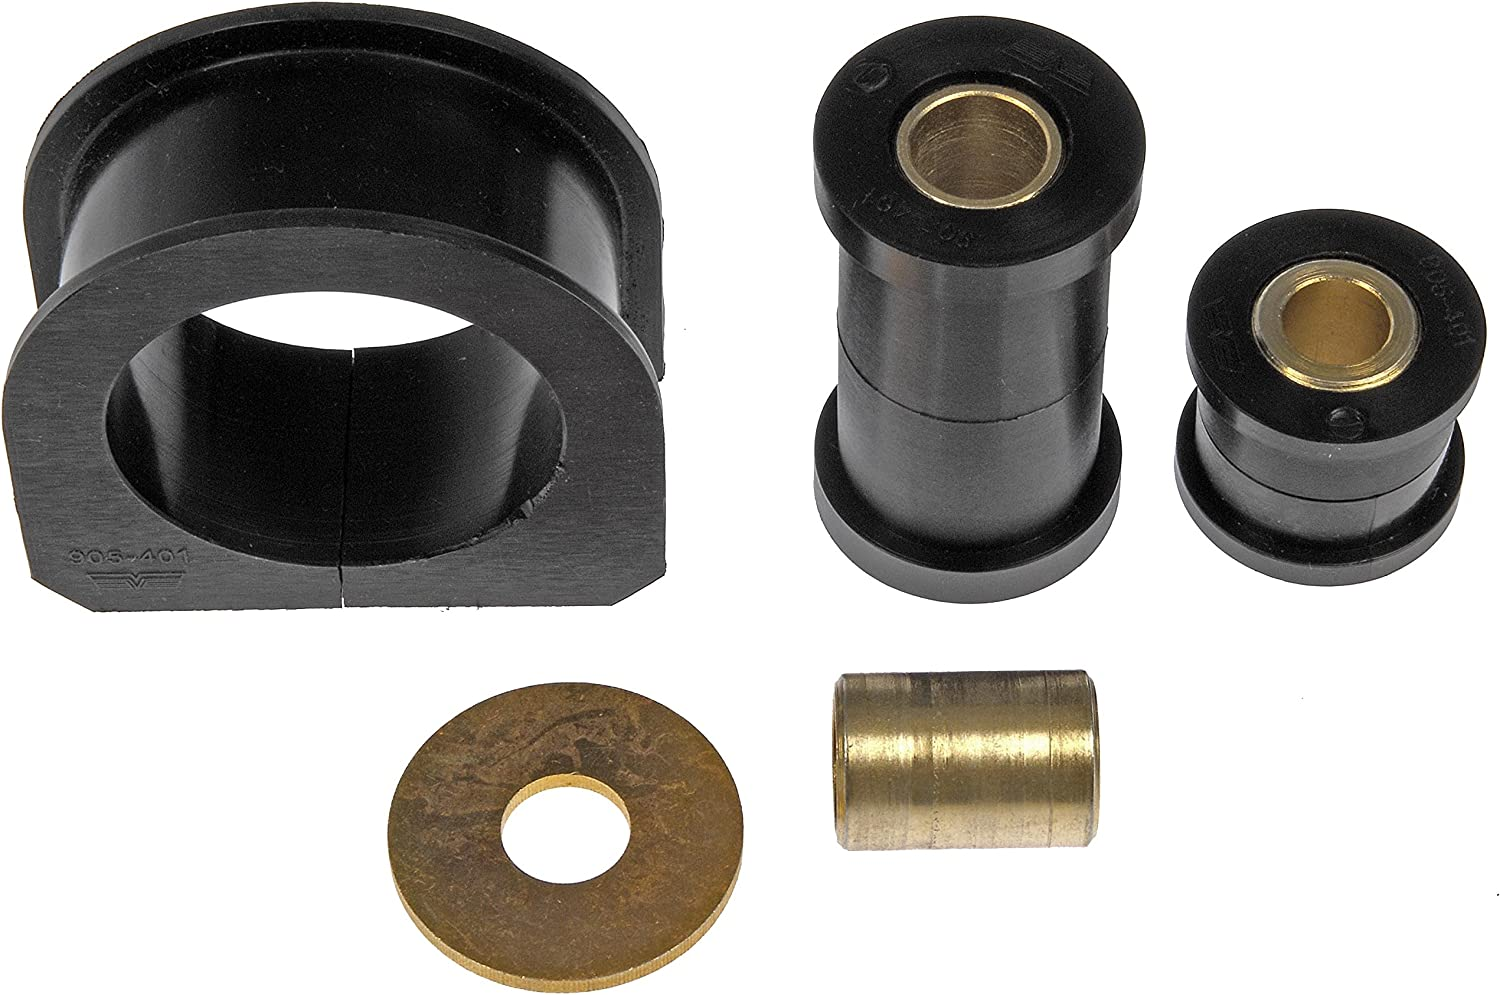 Dorman 905-401 Front 2021 new Rack and Pinion To Mount for Bushing Online limited product Select